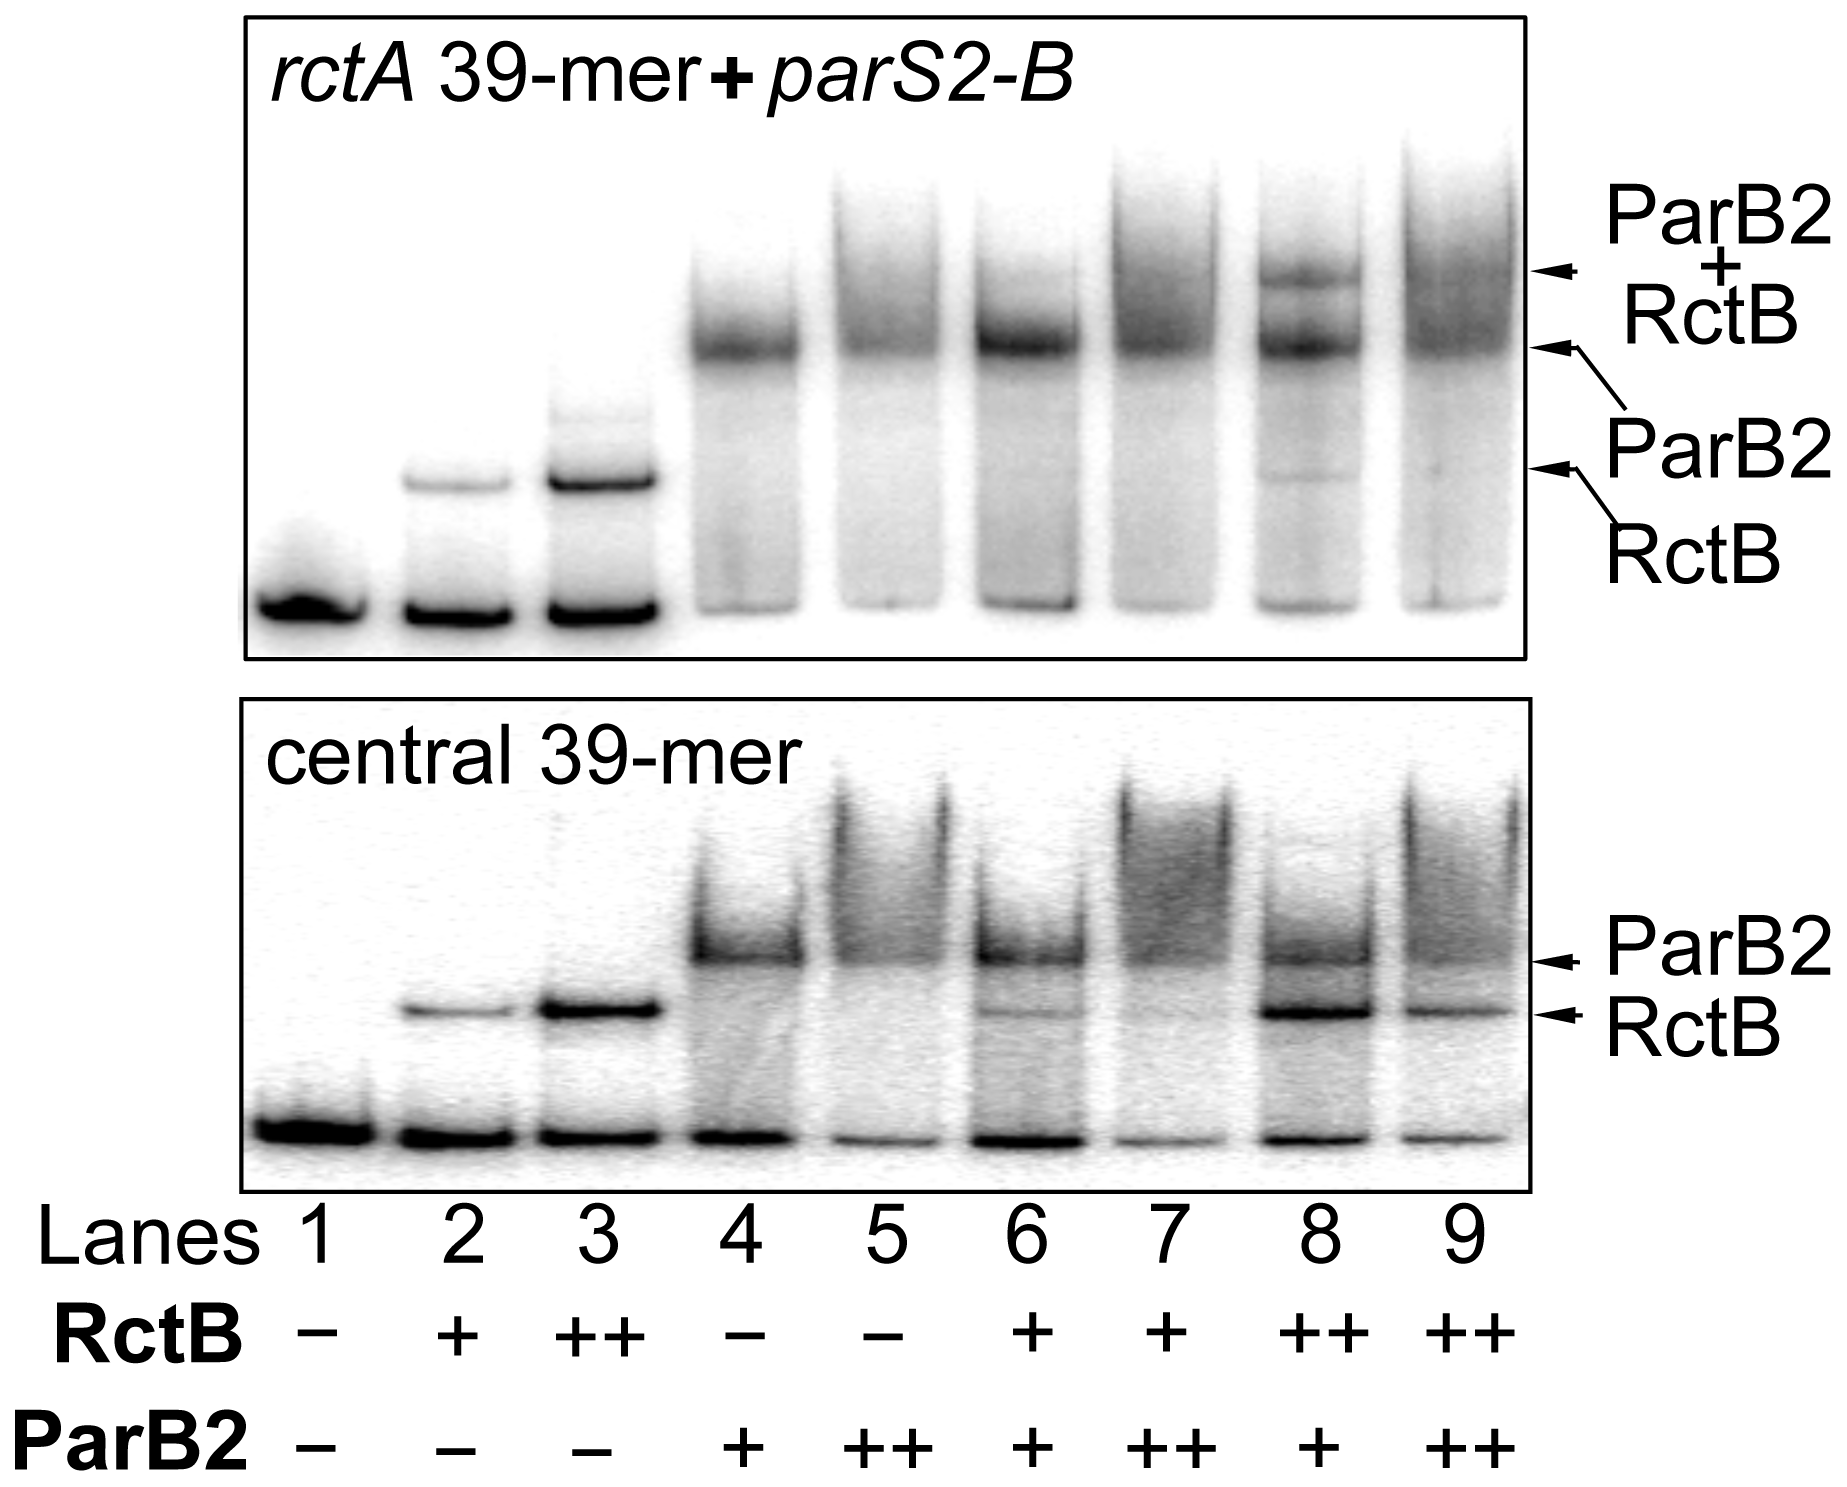 ParB2 and RctB bind simultaneously to <i>rctA</i>, but competitively to the central 39-mer.